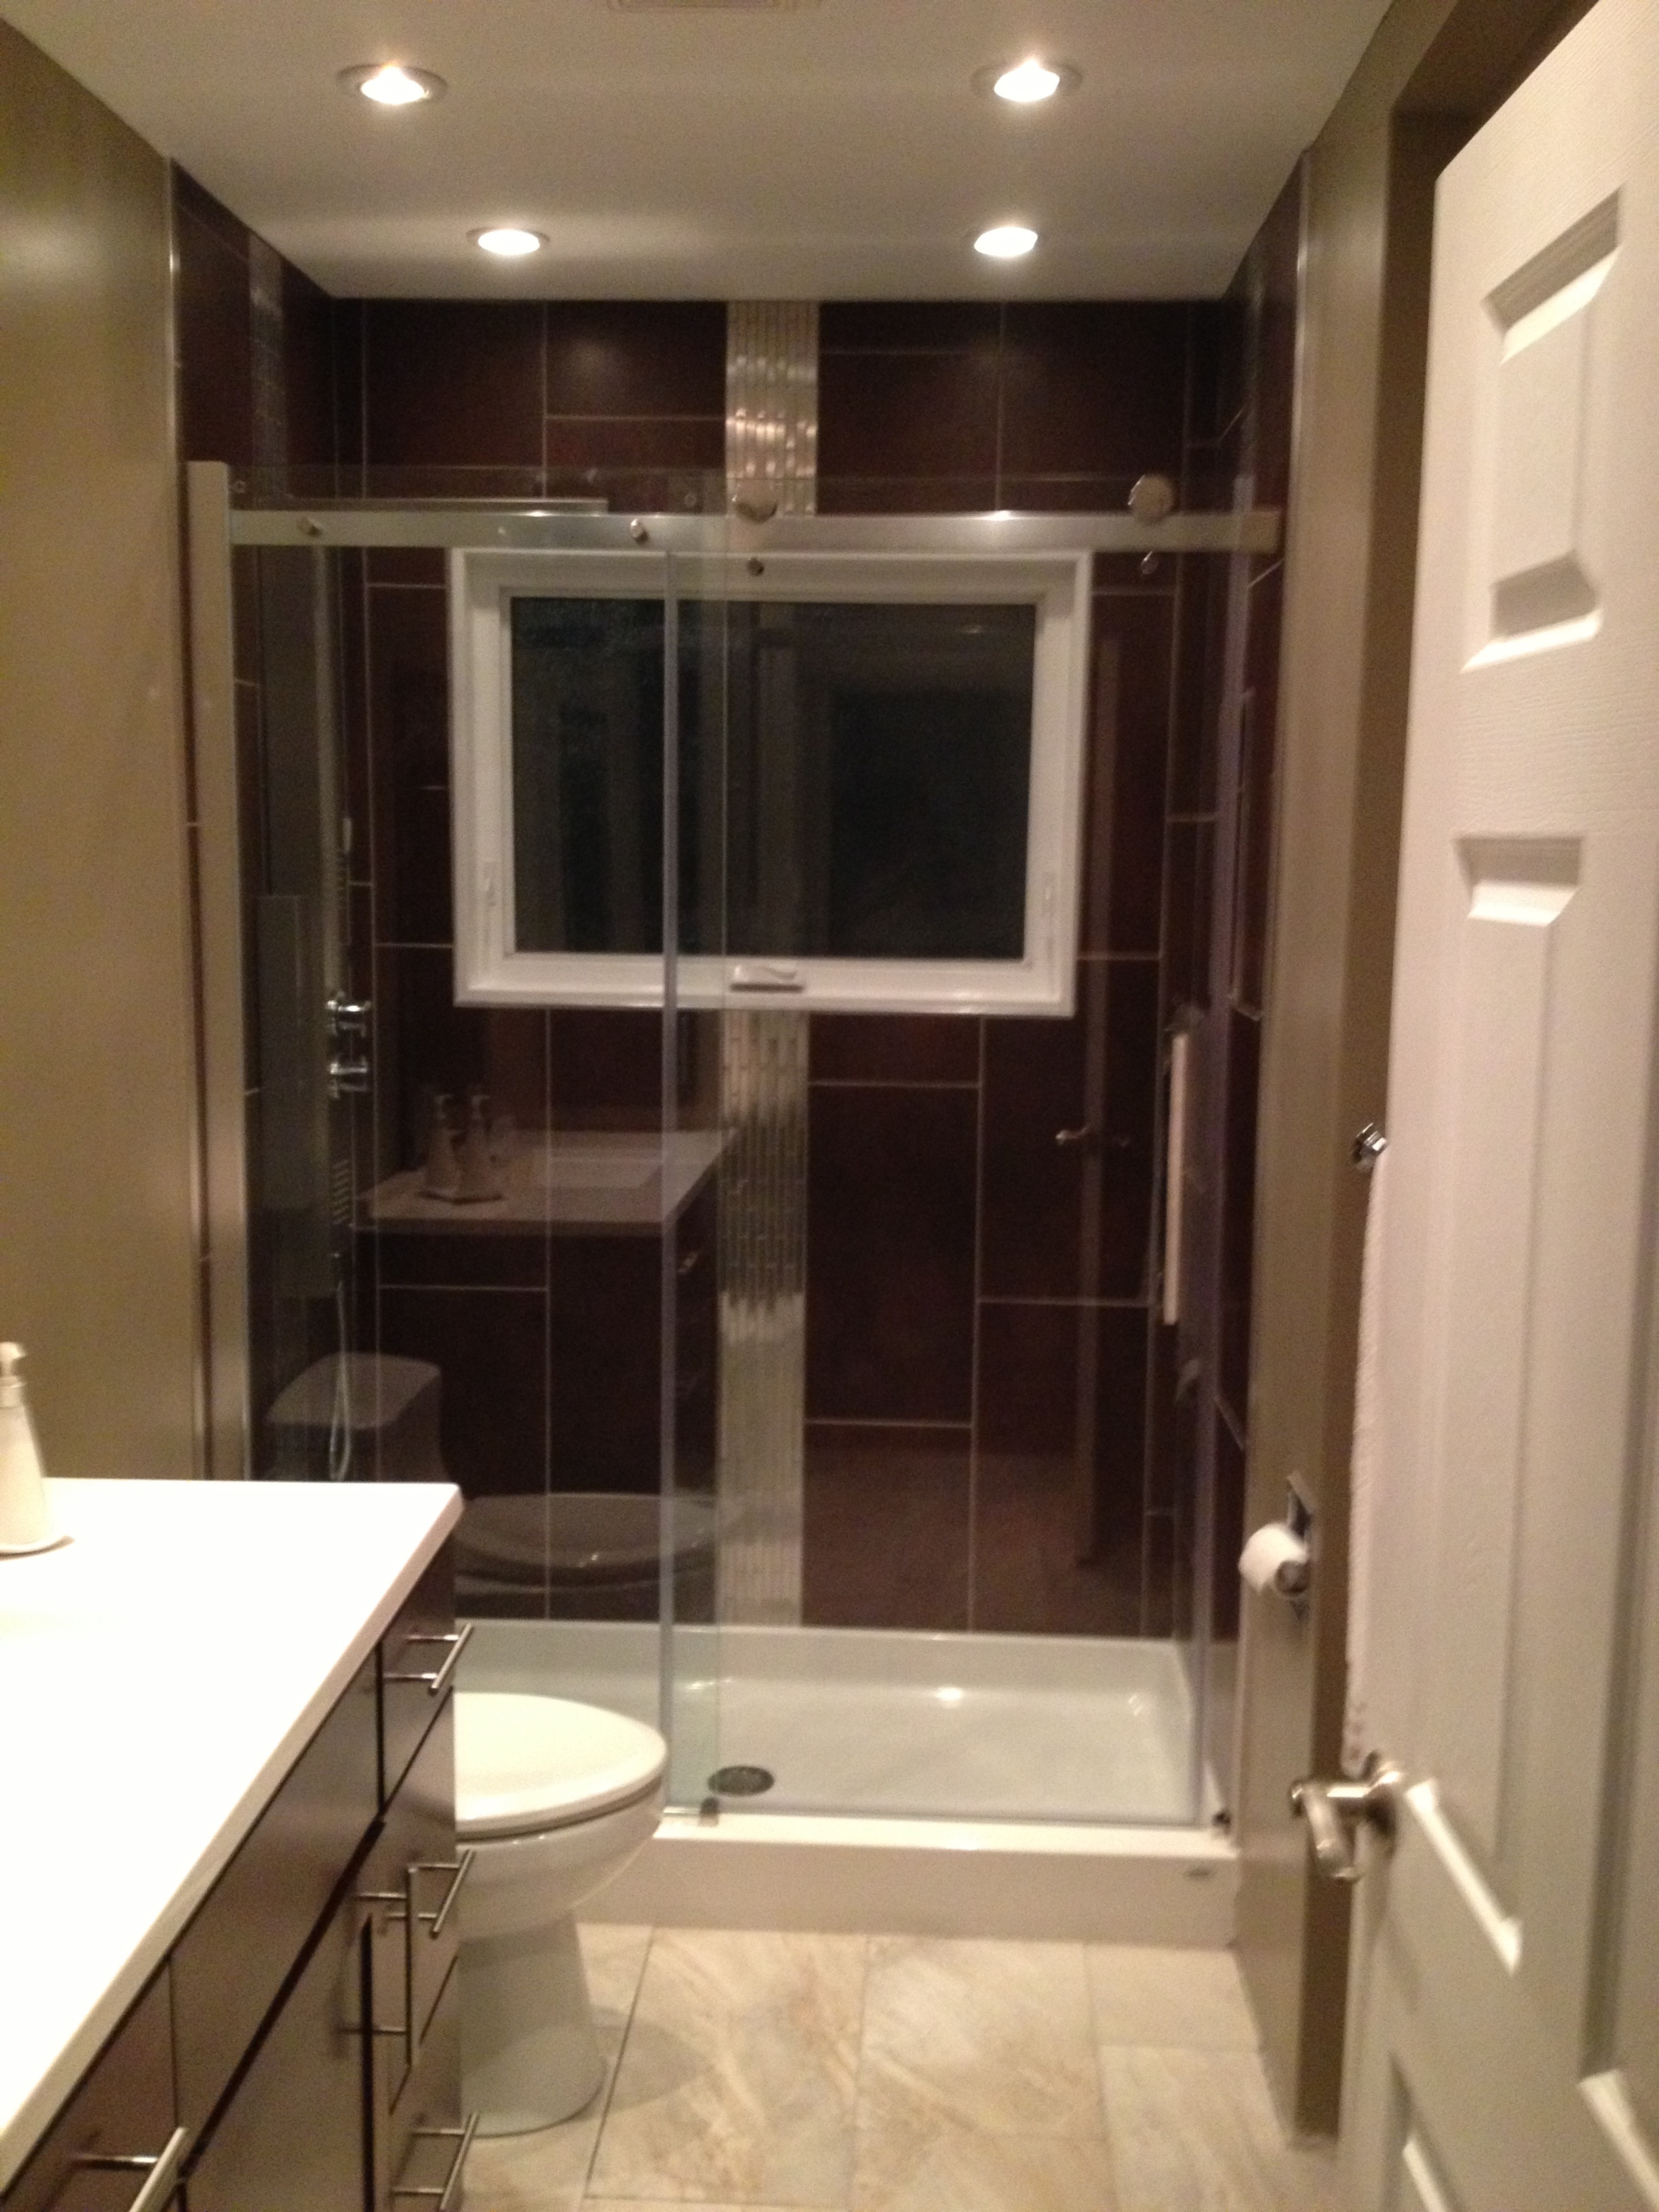 Bathroom remodel with sliding glass door in shower and recessed lighting